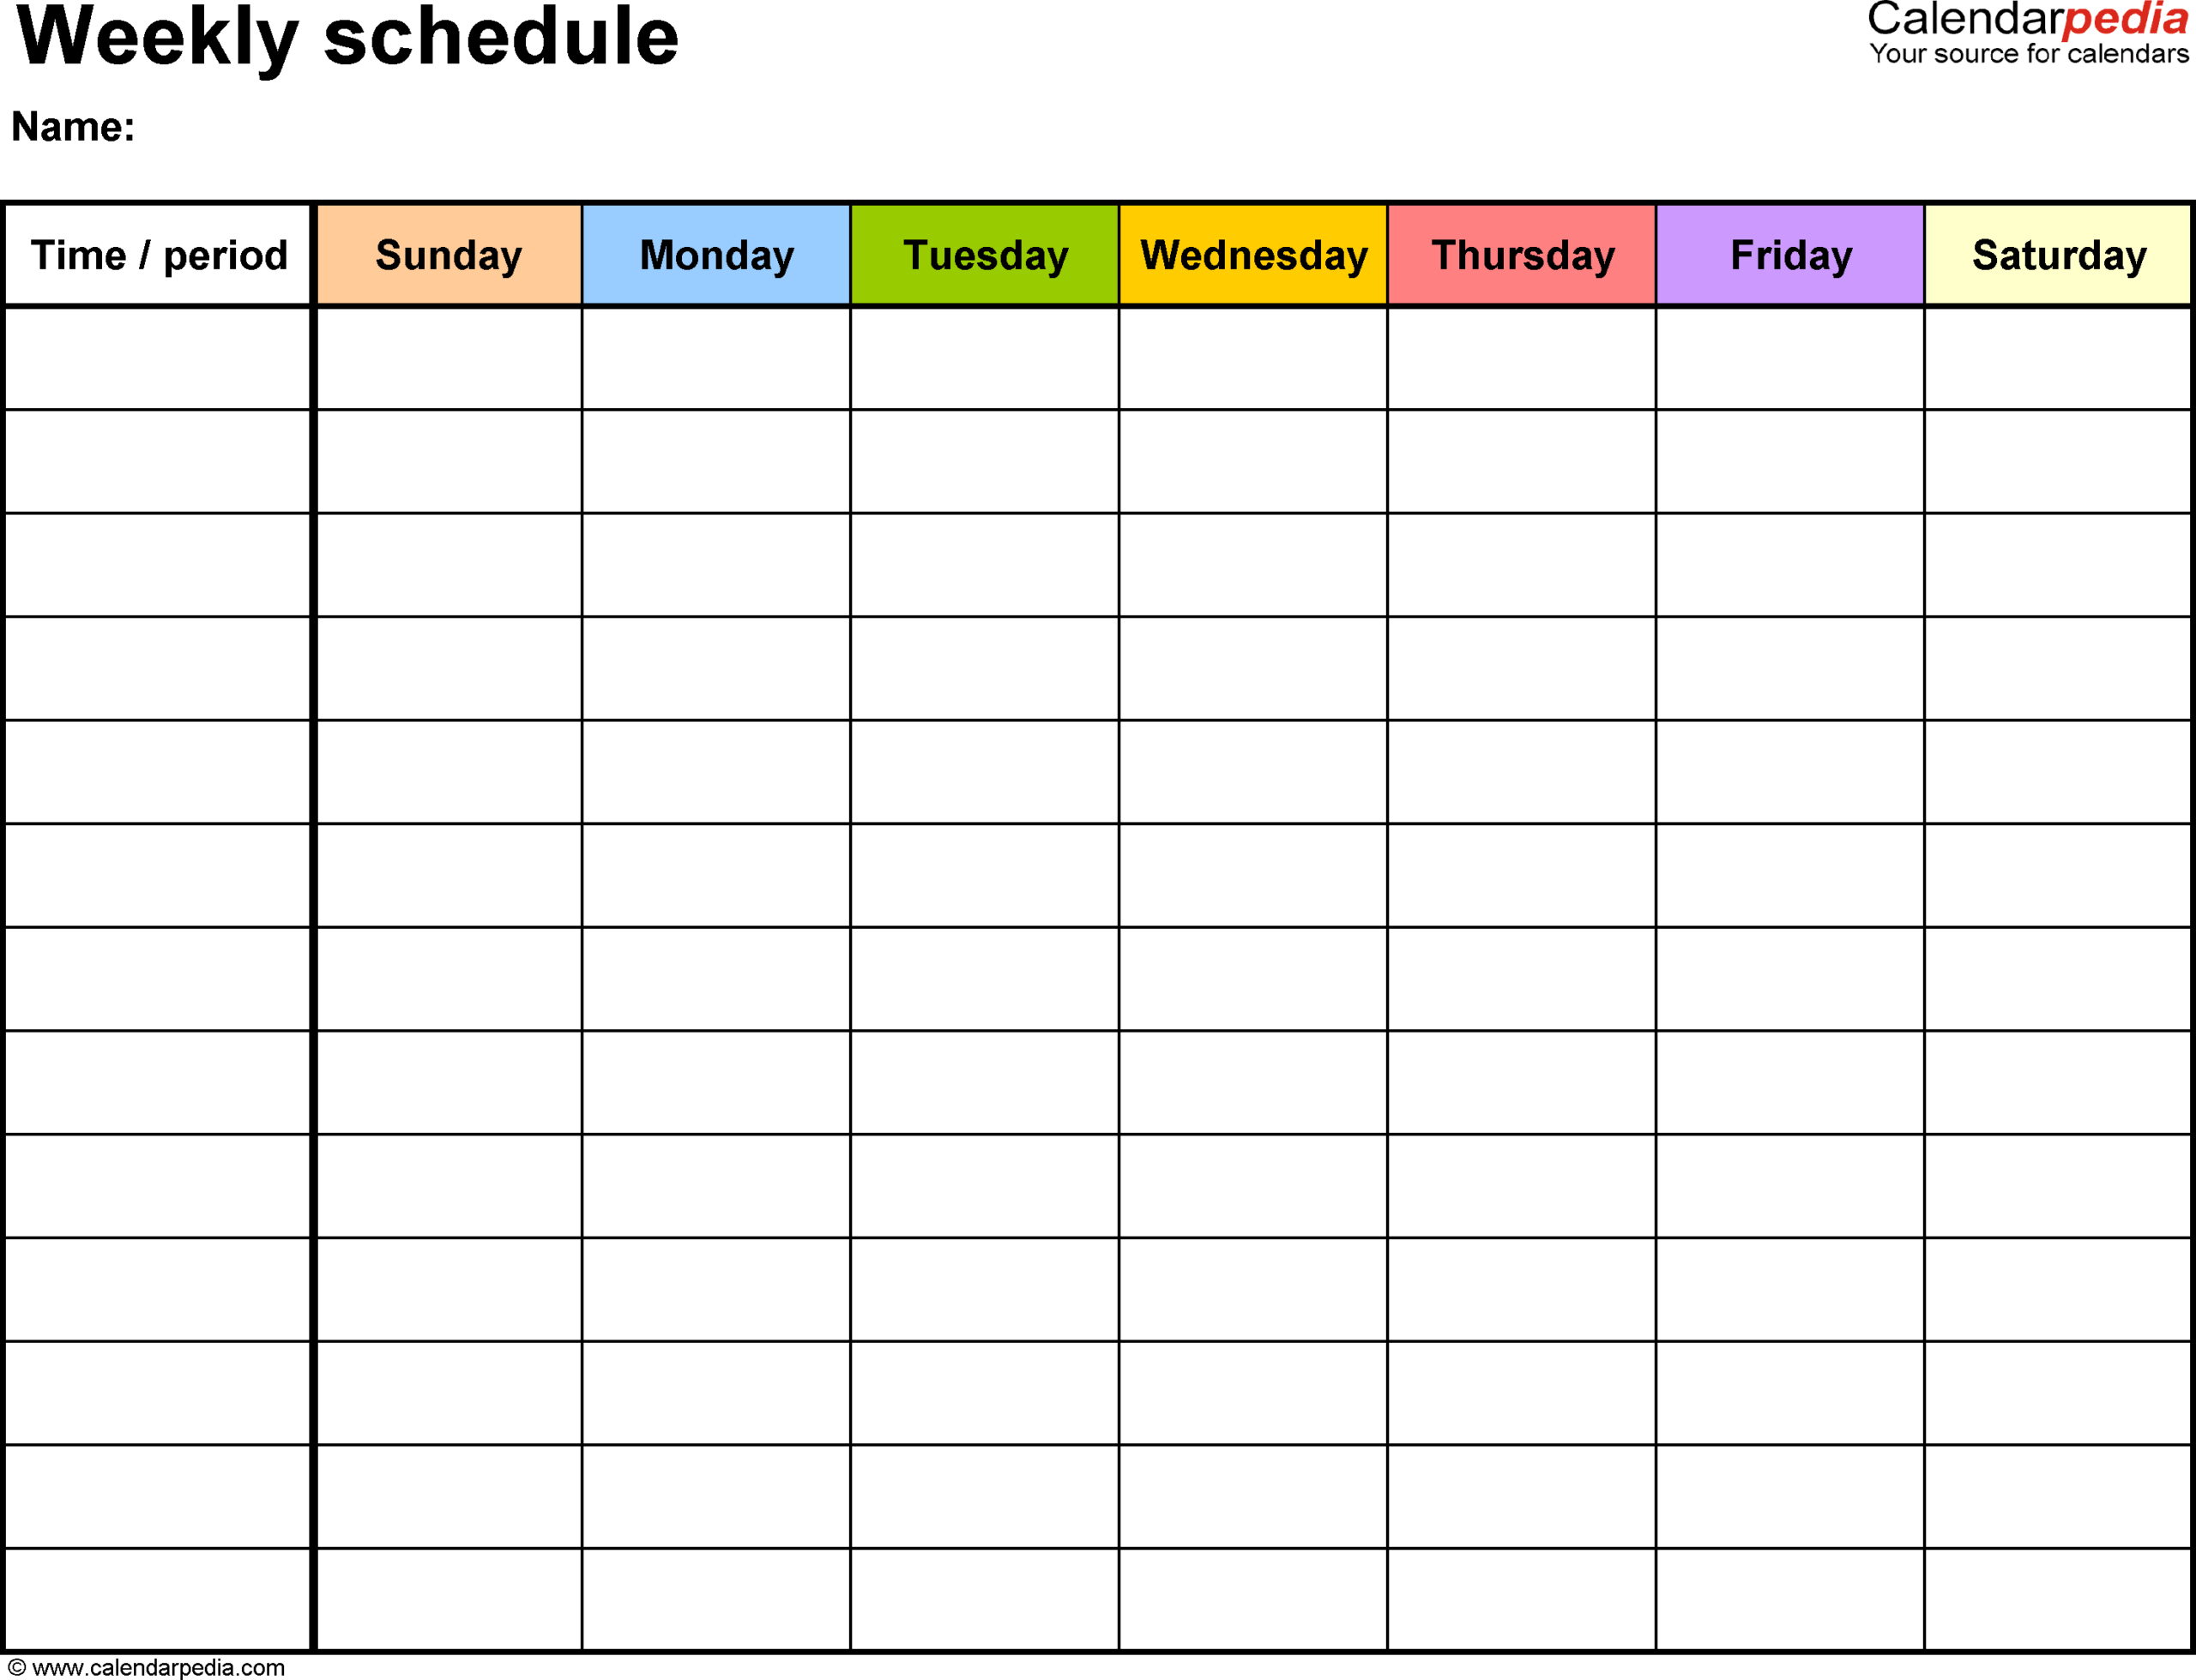 Sunday Through Saturday Schedule Template | Calendar For throughout Saturday Through Friday Calendar